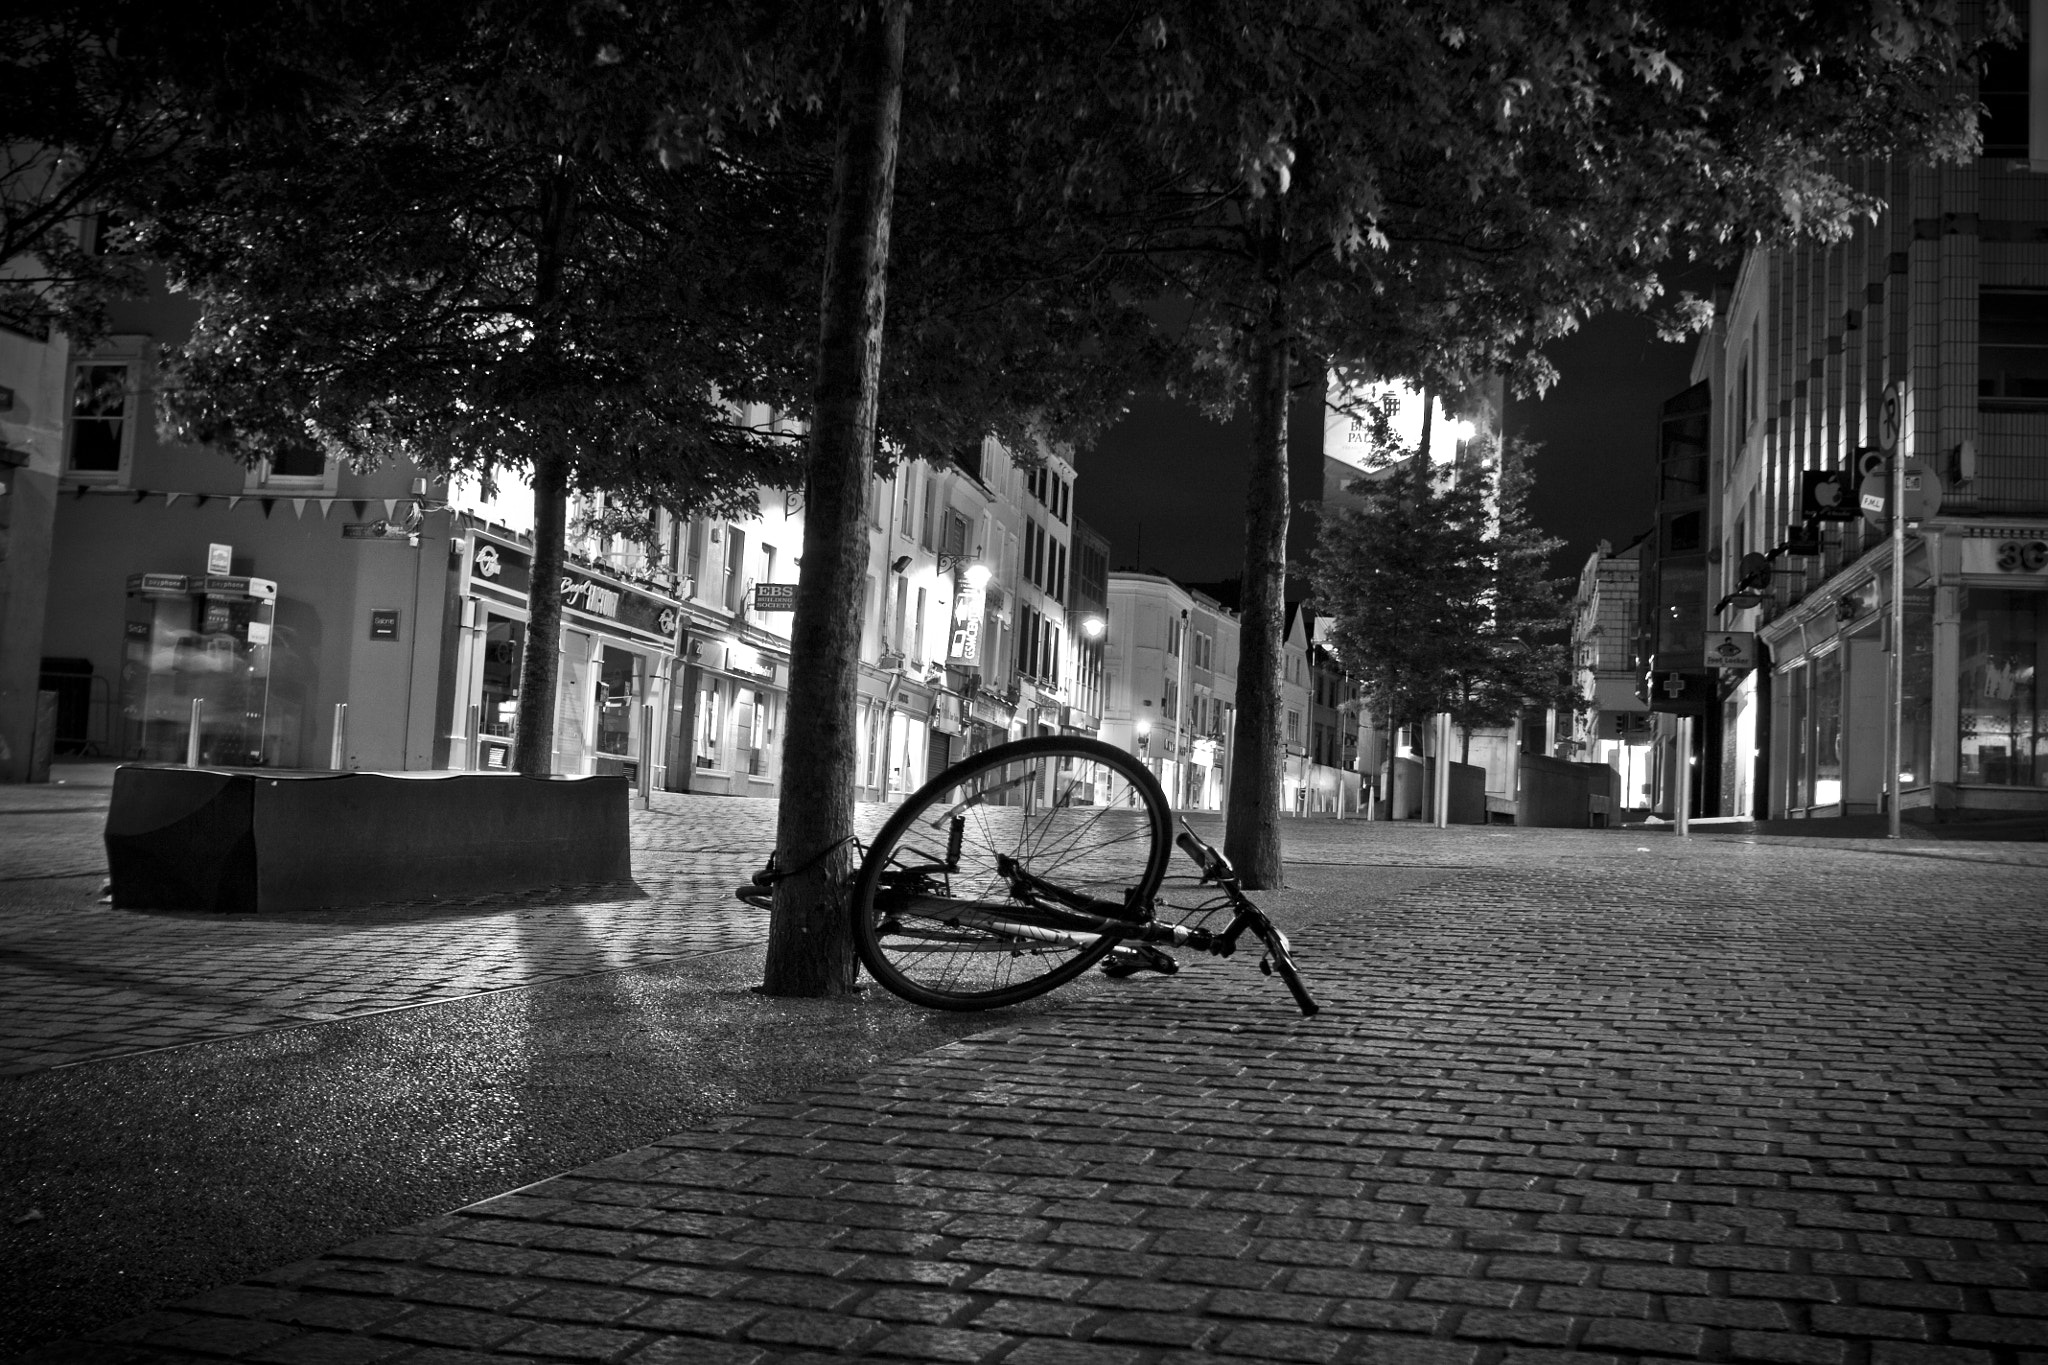 Photograph The Lonely Bike by Shane McDonald on 500px